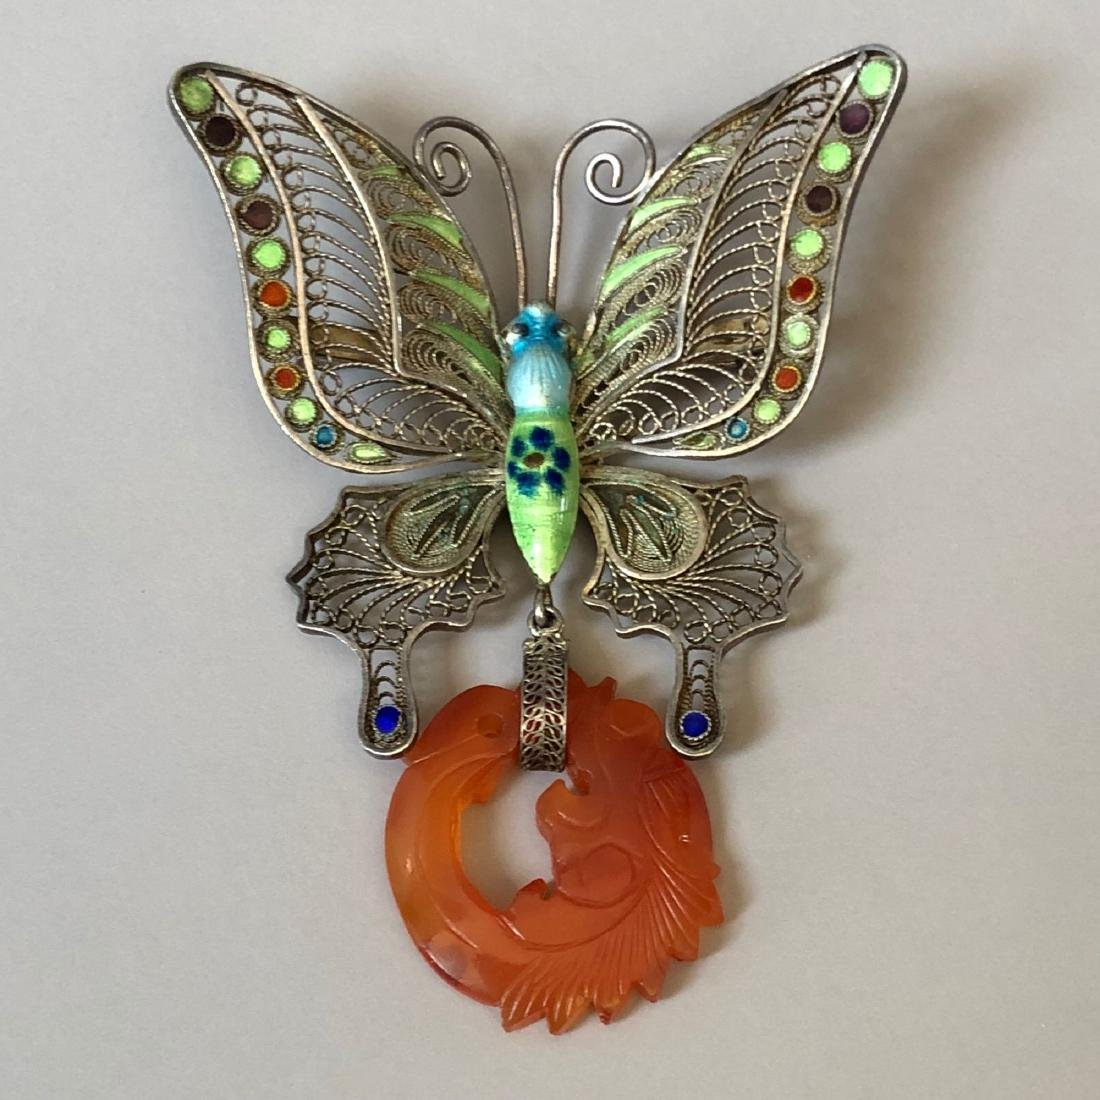 A FINE SILVER BUTTERFLY AND AGATE PIN